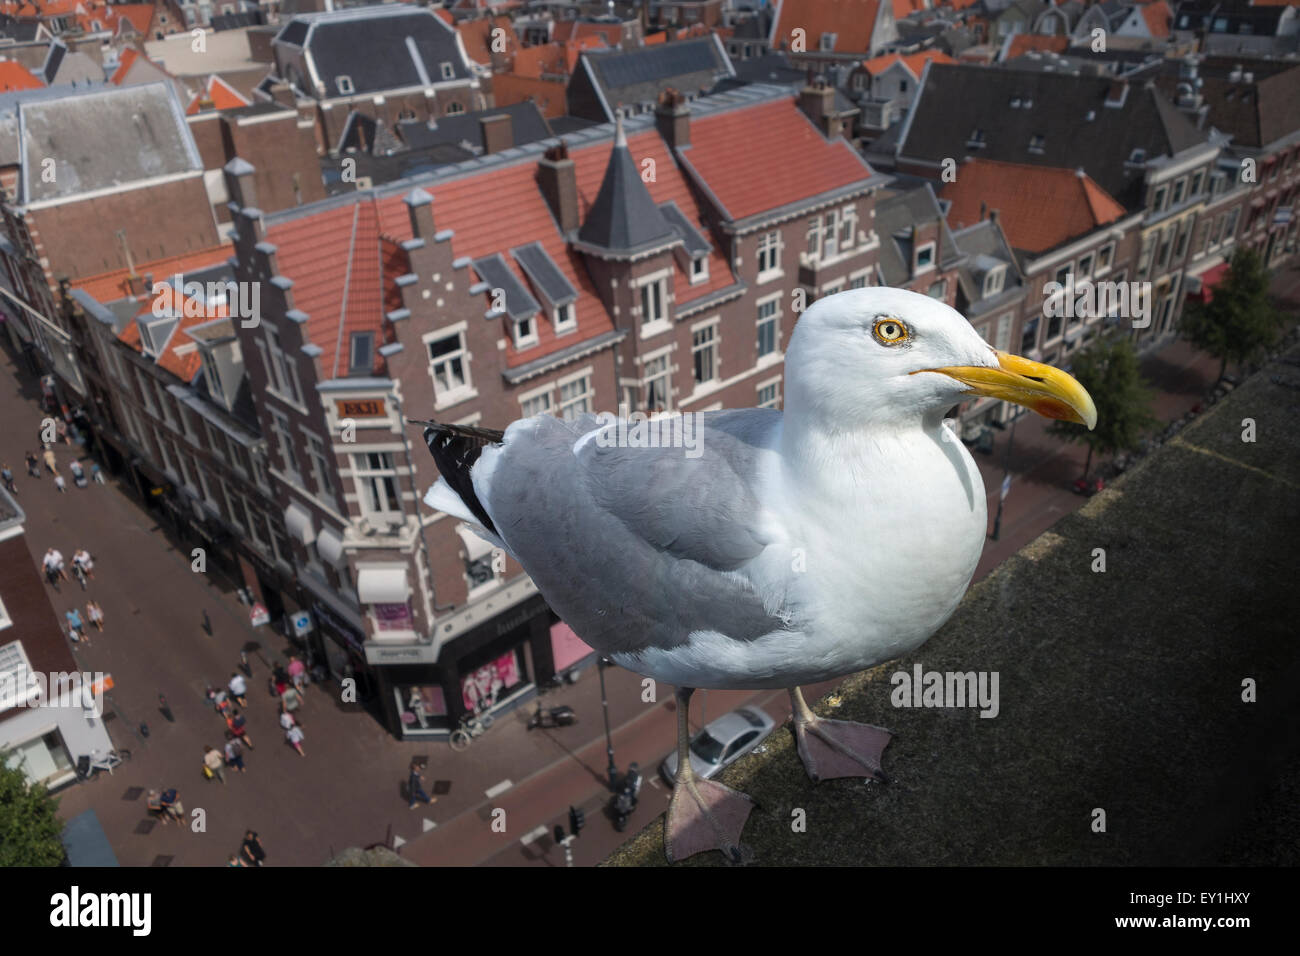 A large Dutch Seagull, Herring Gull (Larus argentatus argenteus) on a roof high above the city of Haarlem, The Netherlands. Stock Photo